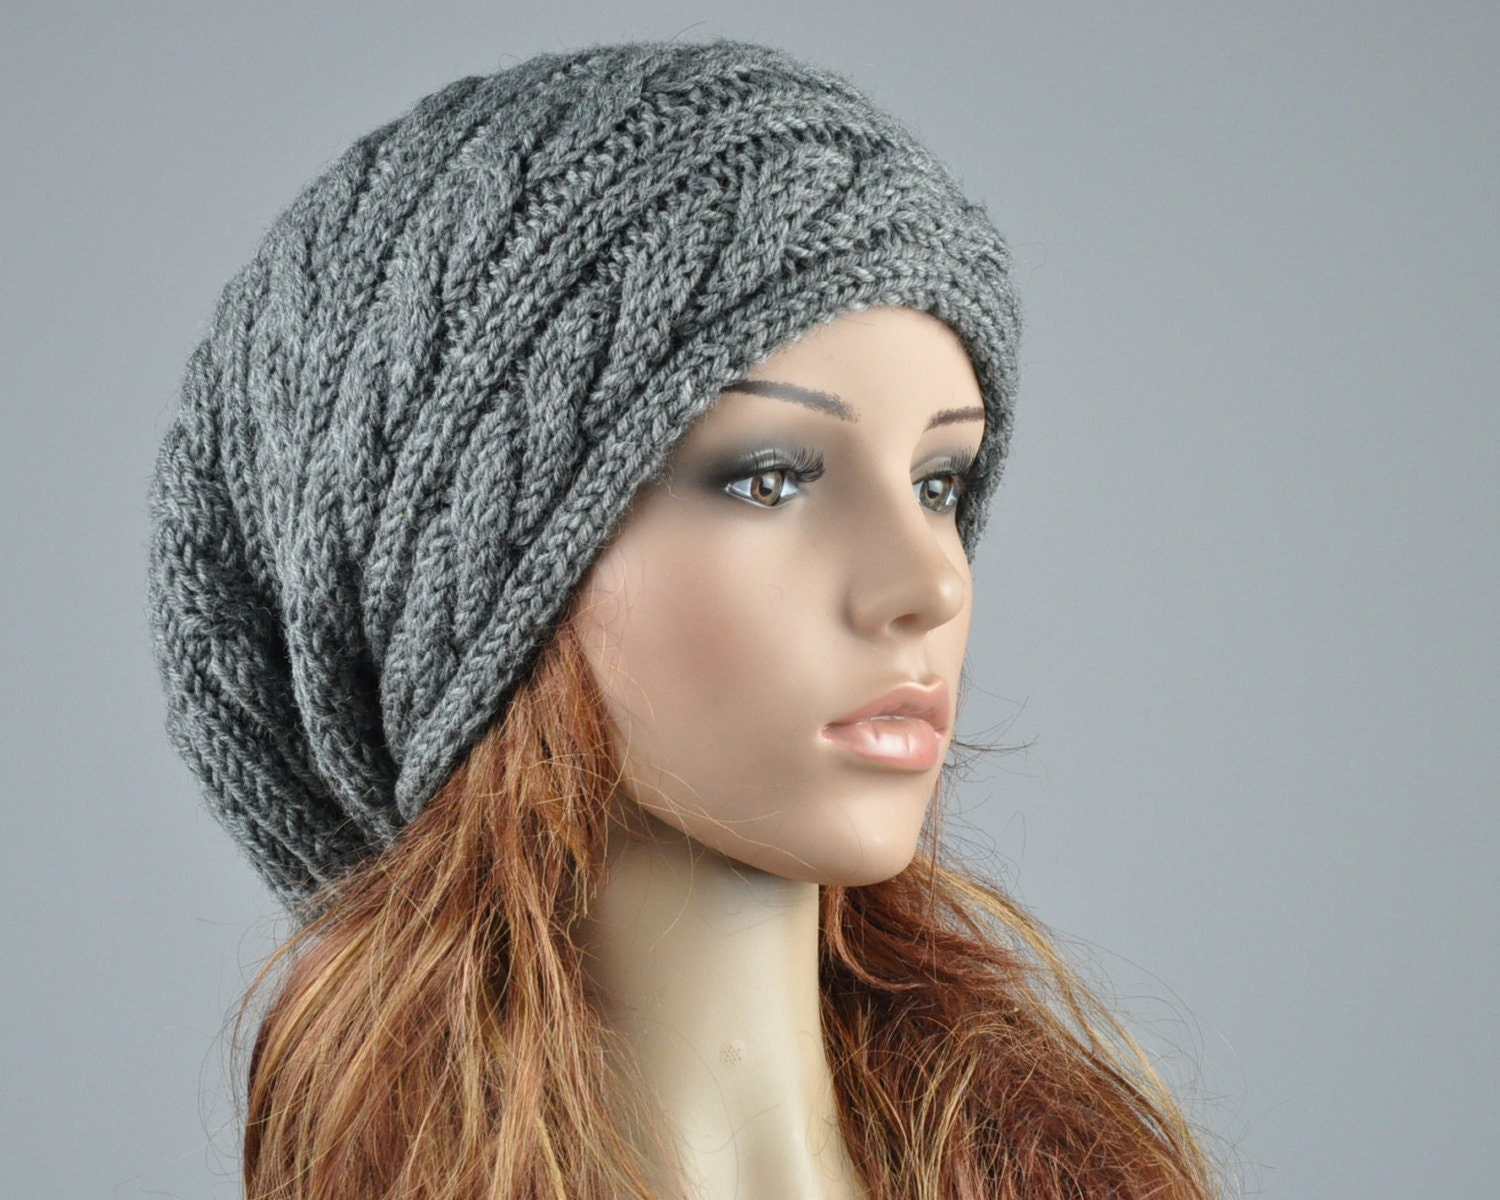 Knitting Patterns Free Slouchy Hat : Hand knit hat Charcoal hat slouchy hat cable pattern by MaxMelody